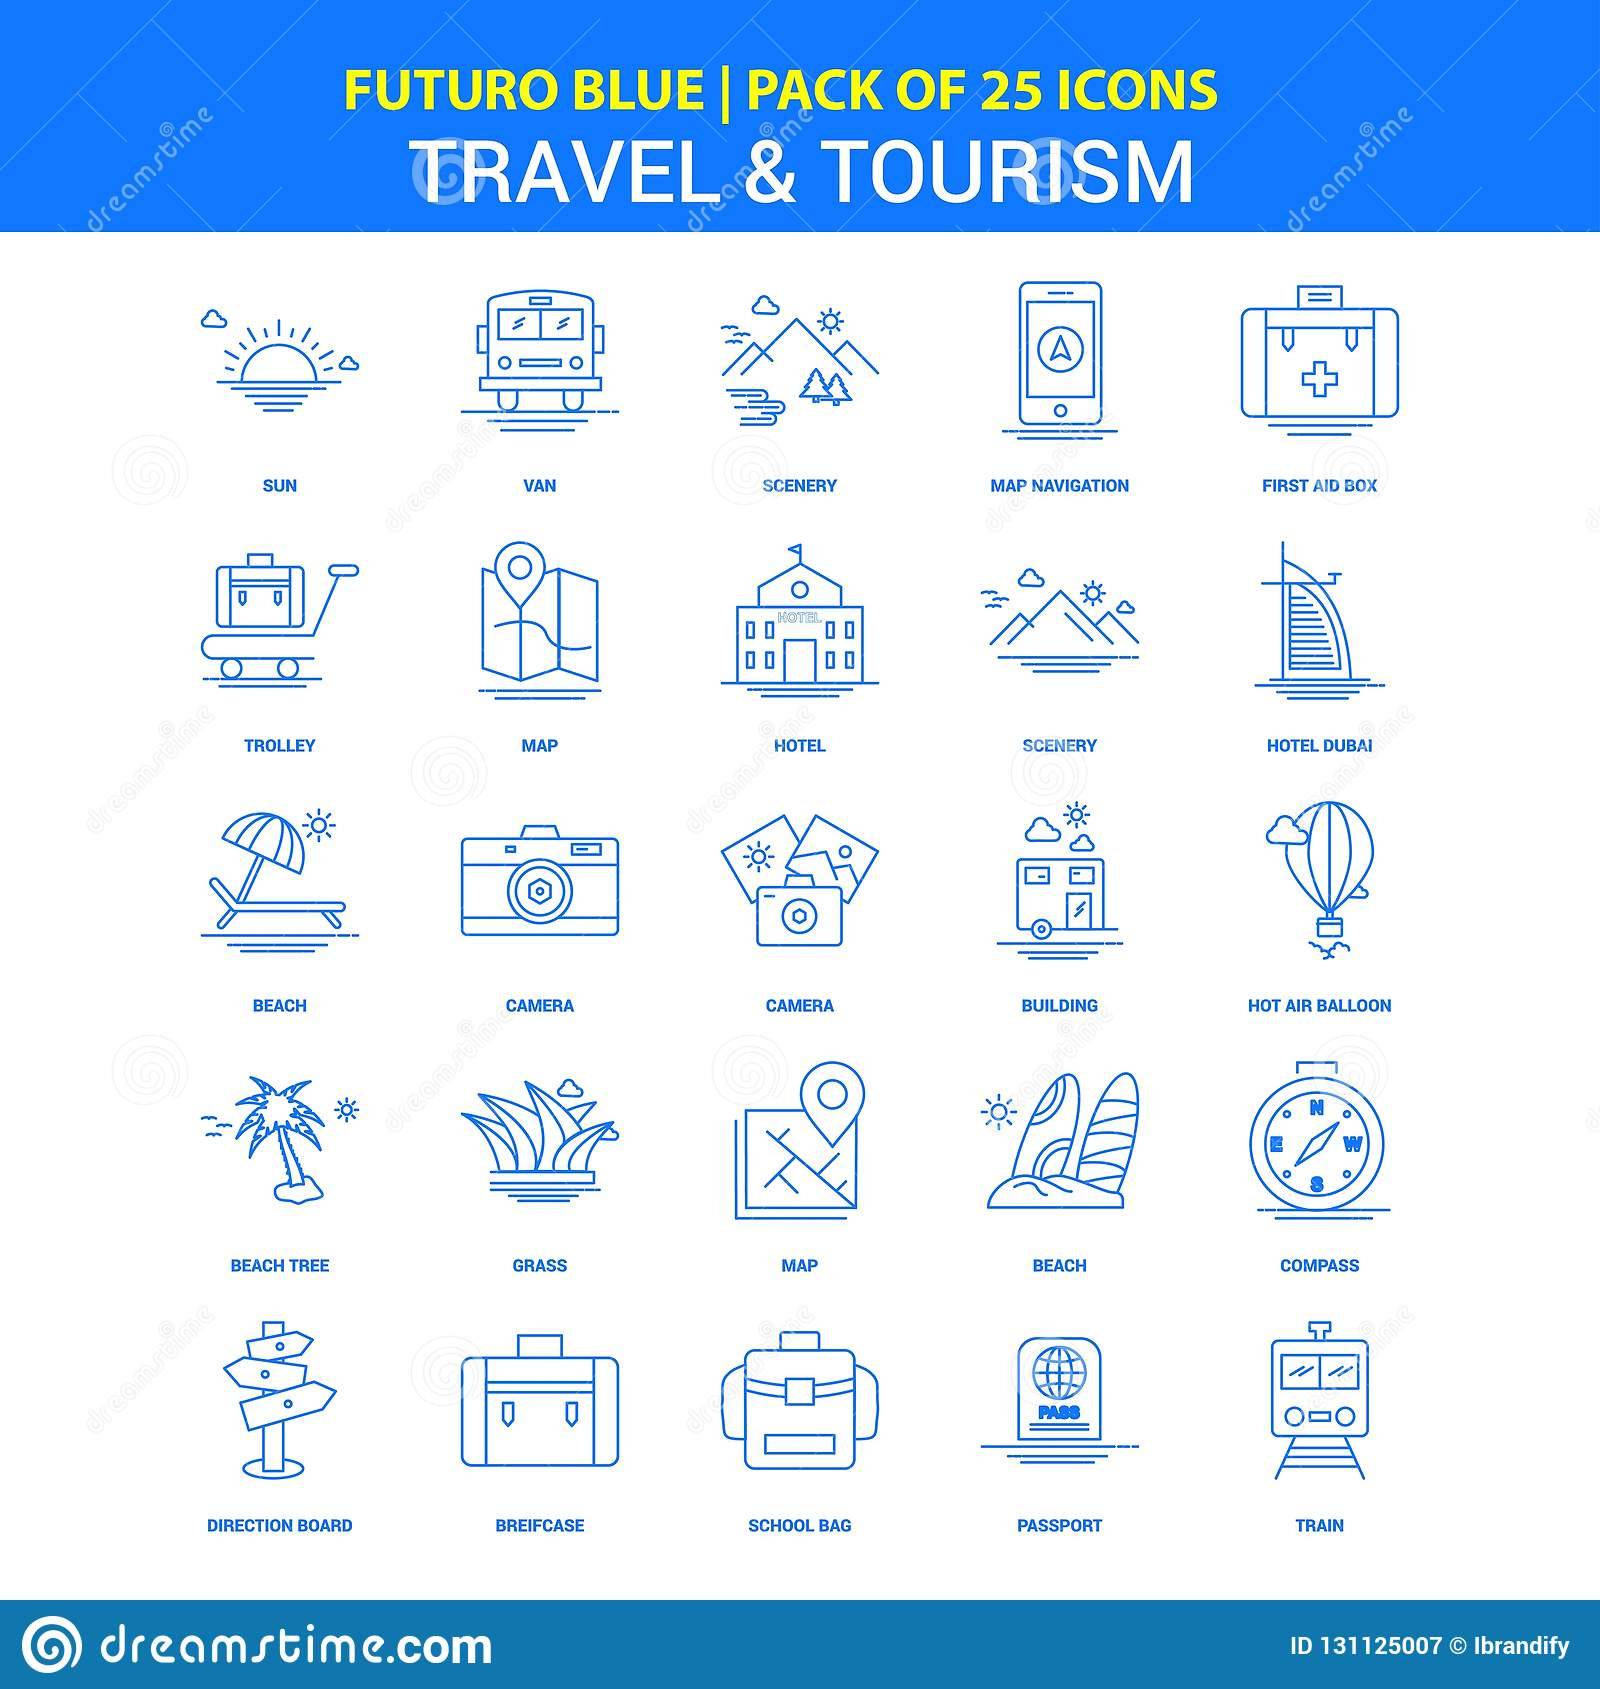 Travel and Tourism Icons - Futuro Blue 25 Icon pack